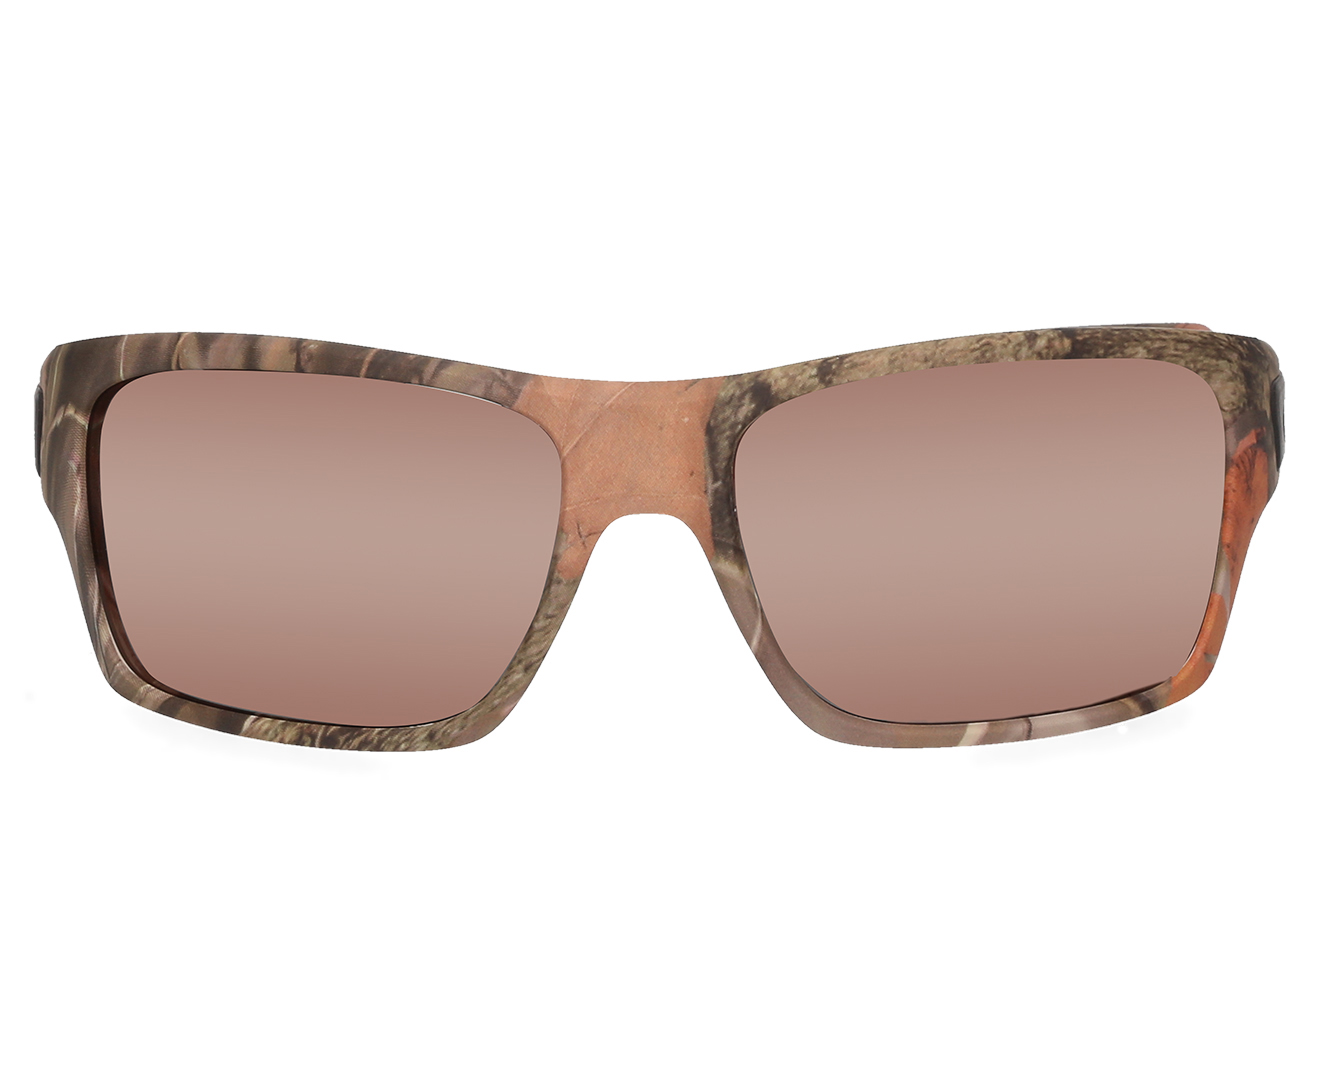 5ed9a86bbe Oakley Men s Turbine Sunglasses - Woodland Camo VR28 Black Iridium ...